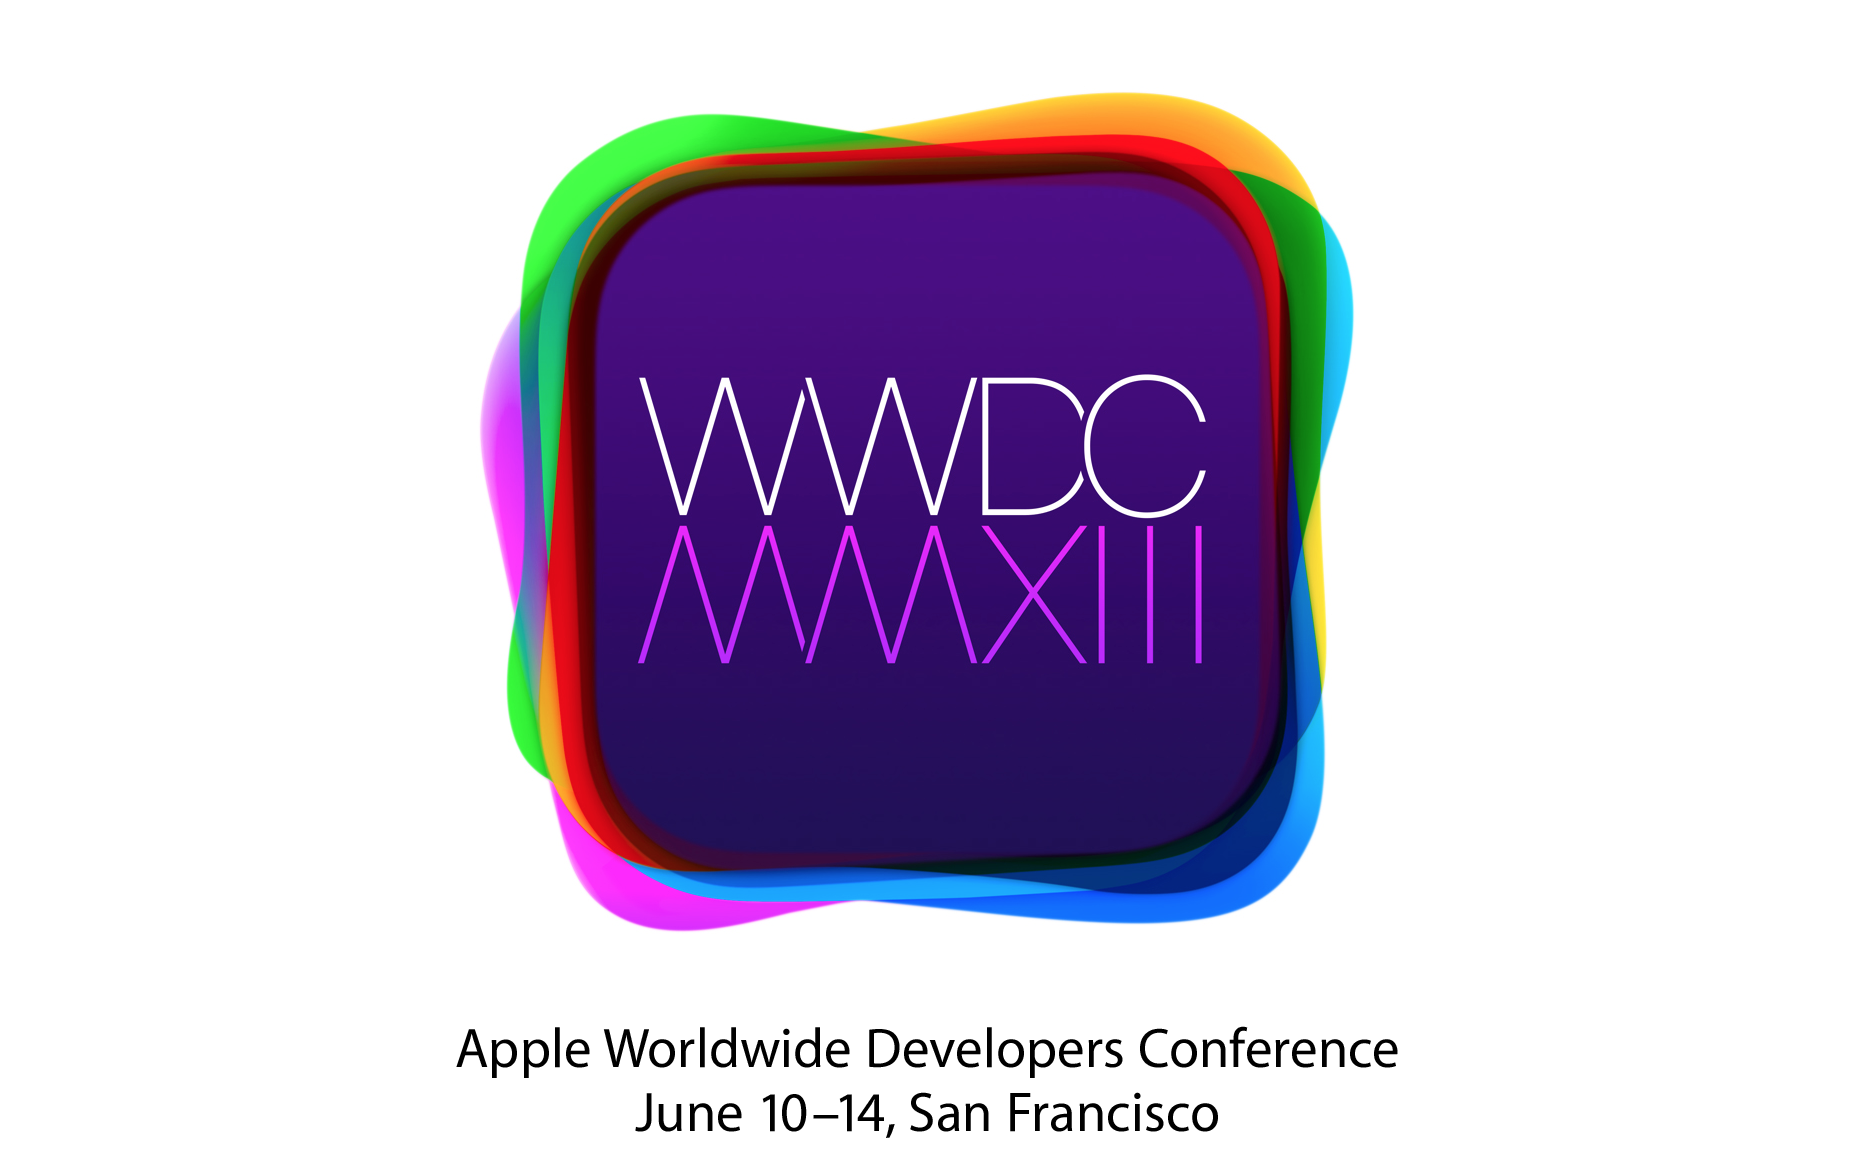 WWDC 2013 Logo Apple